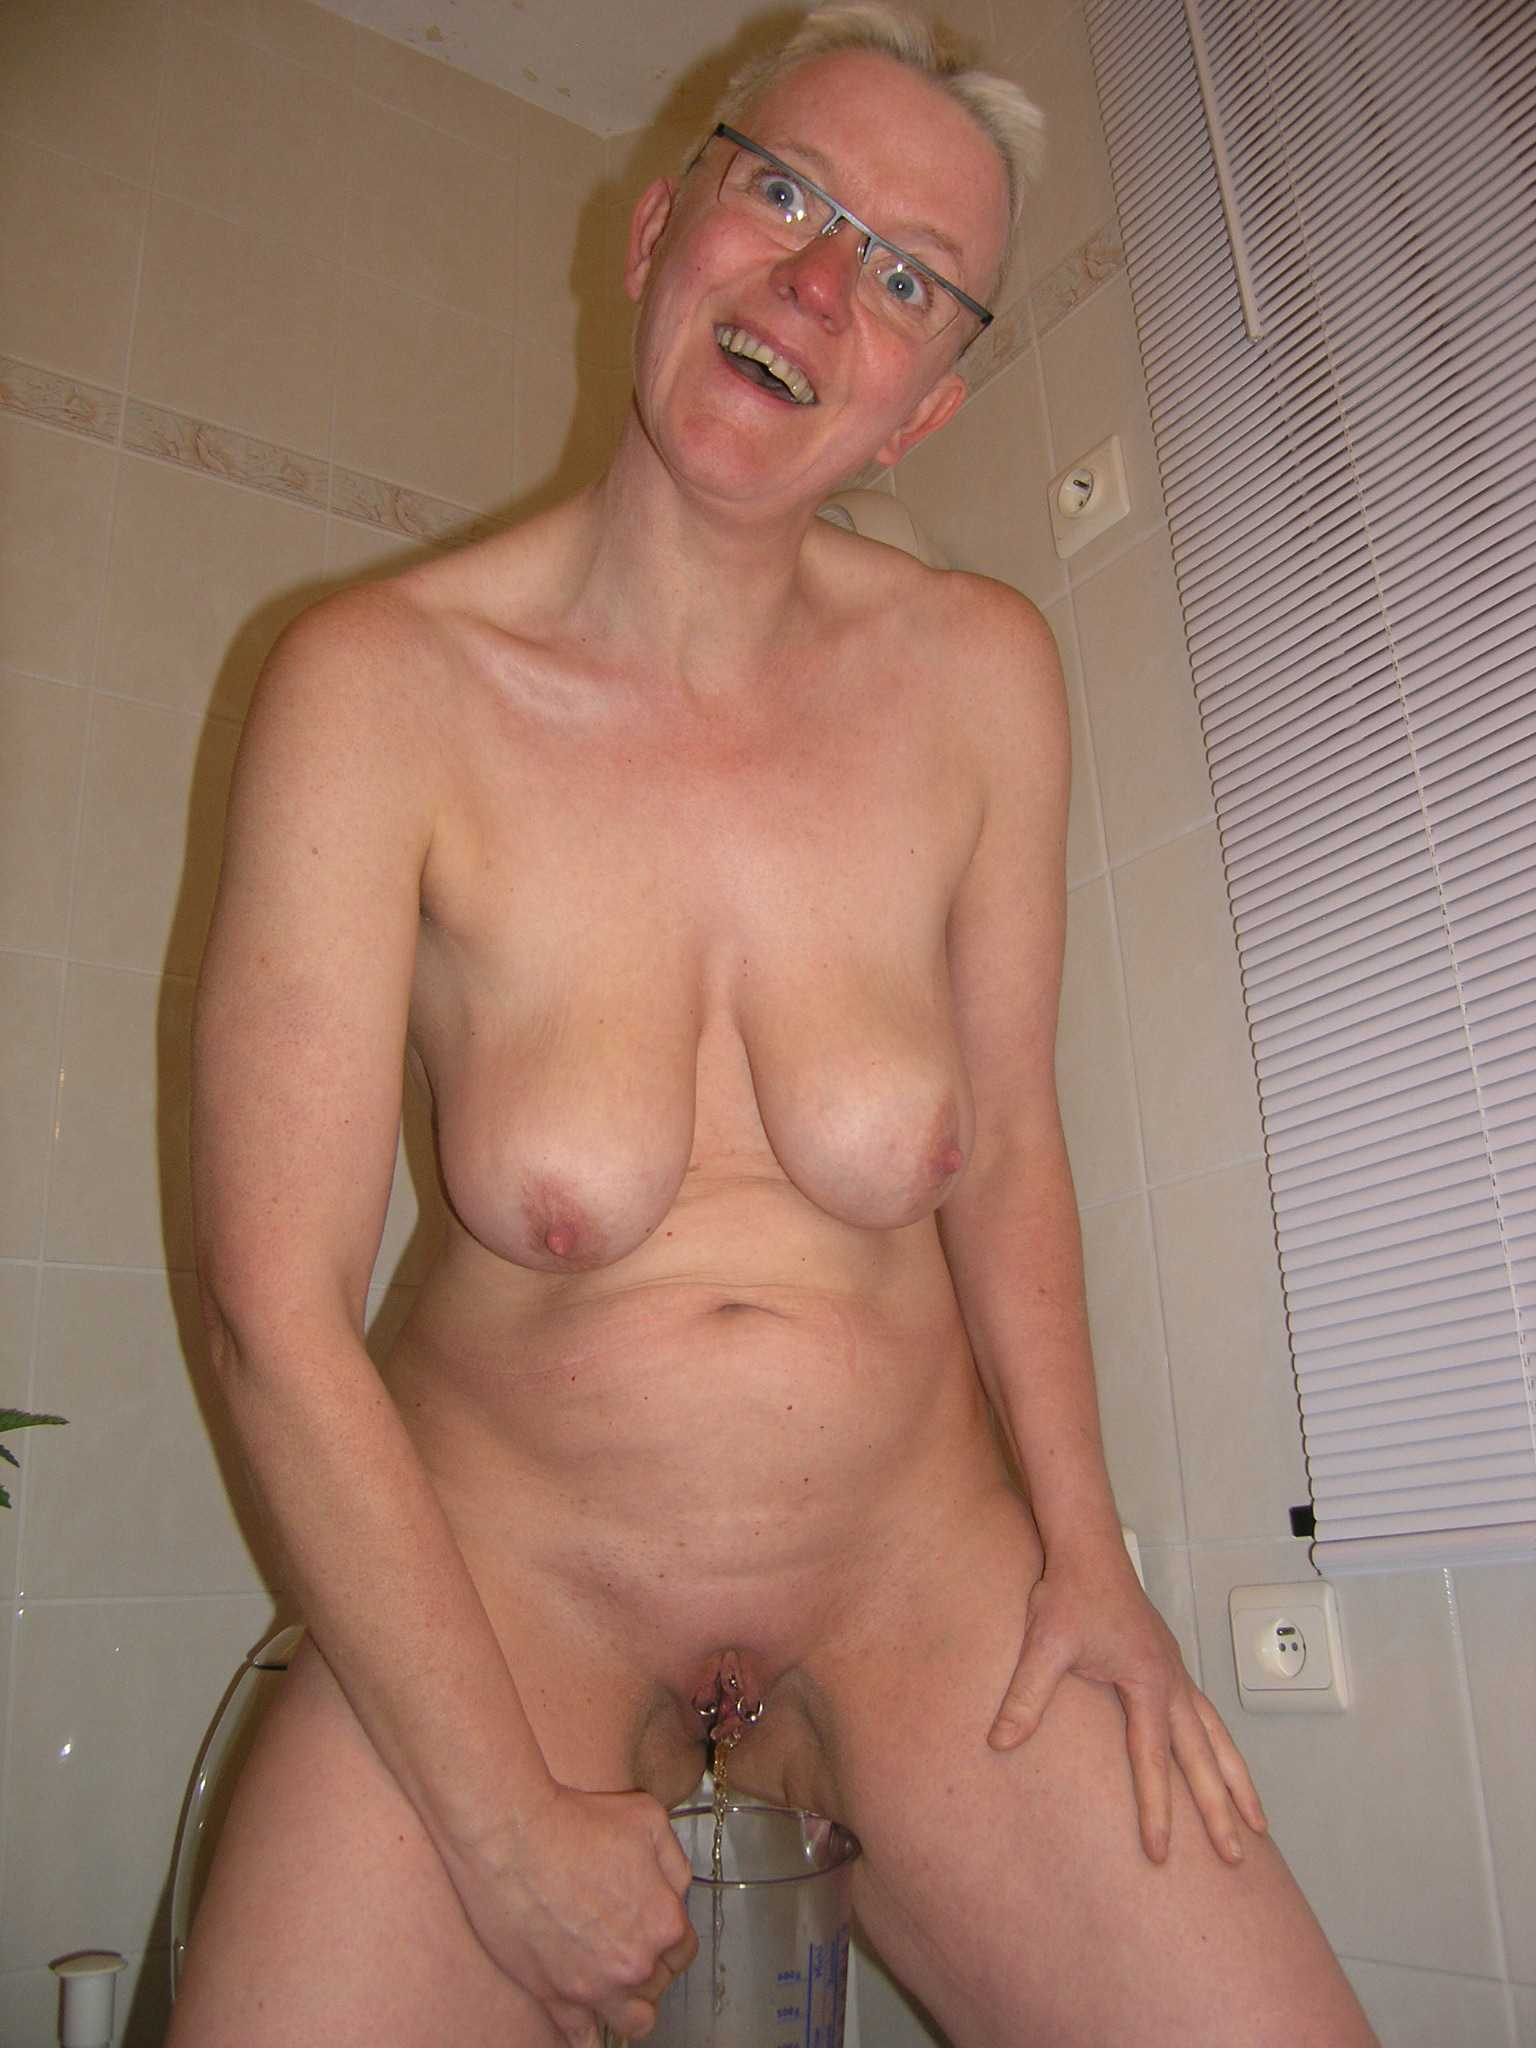 elderly peeing pics - xxx sex photos